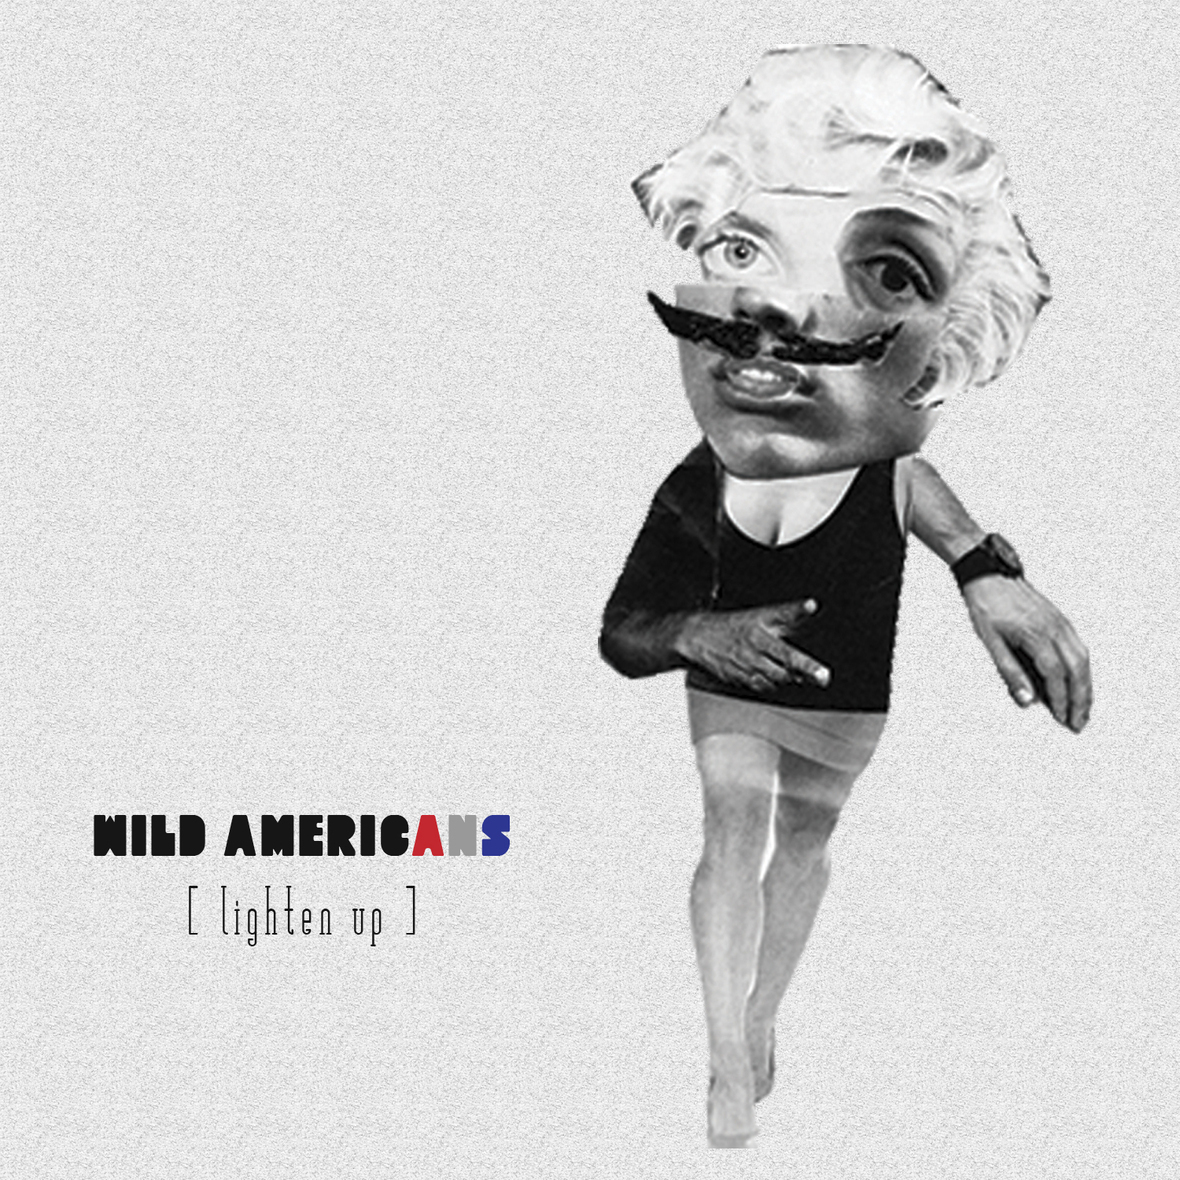 WildAmericans-LightenUp